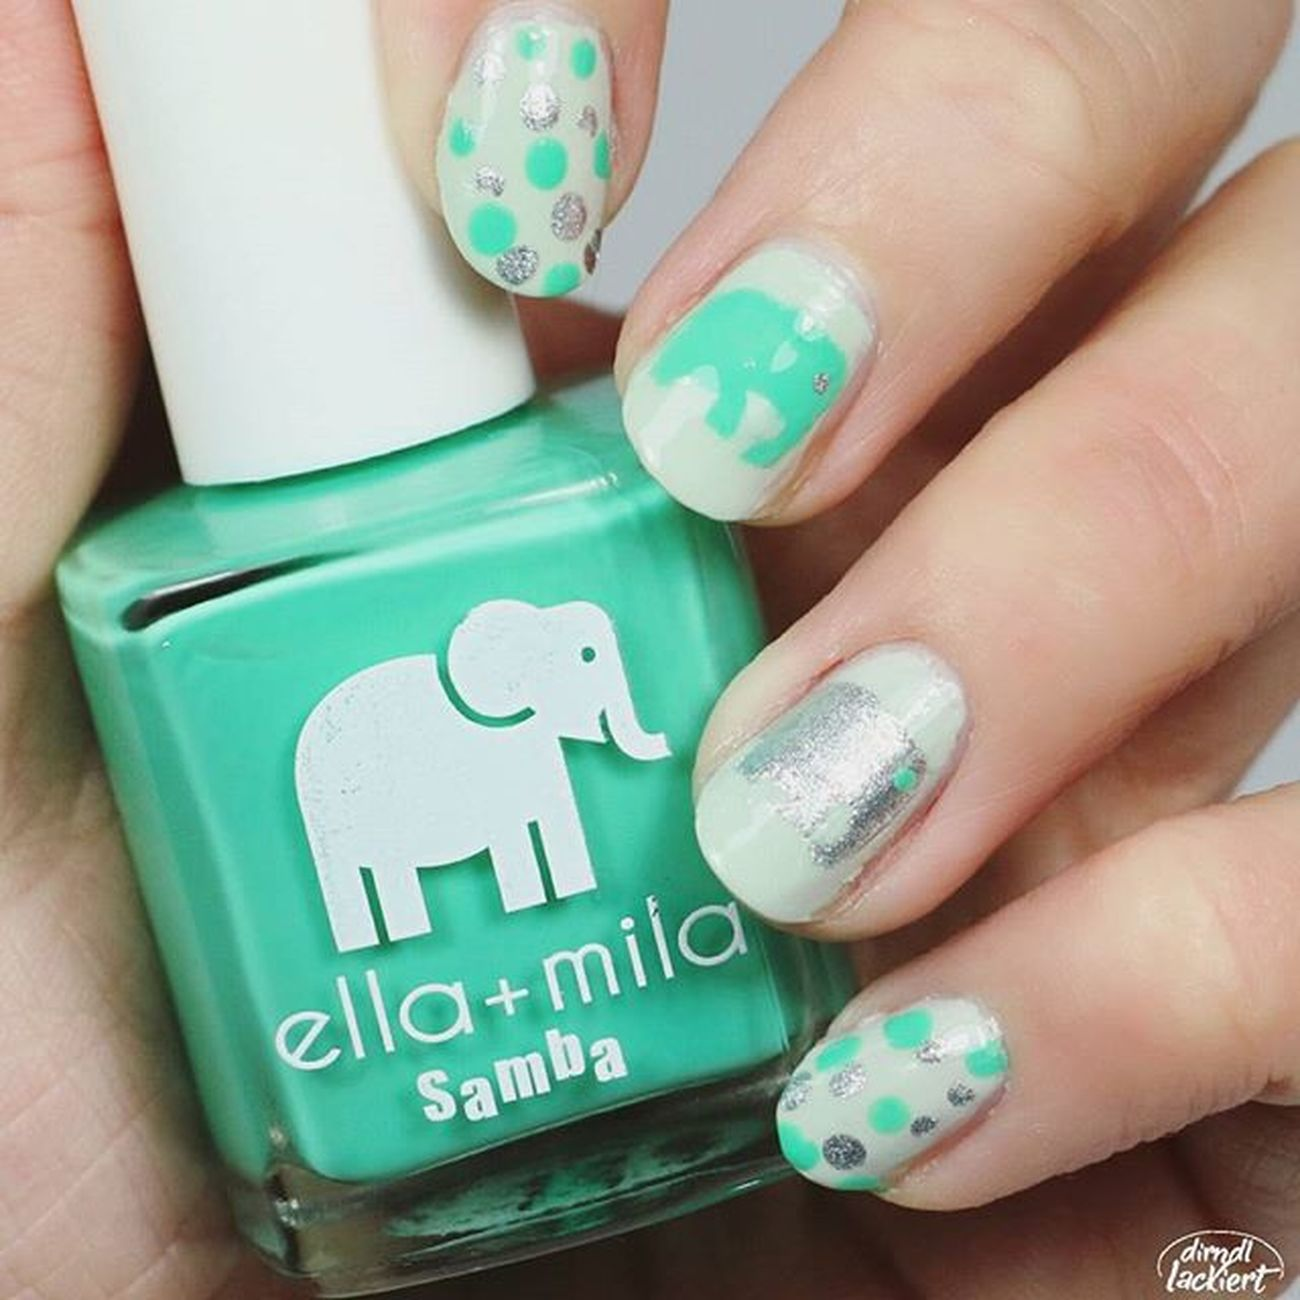 Dear @ellamilapolish I wish you all the best to your 2nd Birthday! 🎂🎉 Lots of kisses to your lovely elefants 😘❤ Und guten Morgen an alle in Deutschland 😁🌝 Ellamila Ellamilaturns2 HappyBirthday Nagellack  Nailpolish Beautiful Nailart  Naildesign Nails2inspire Nails Naillacquer